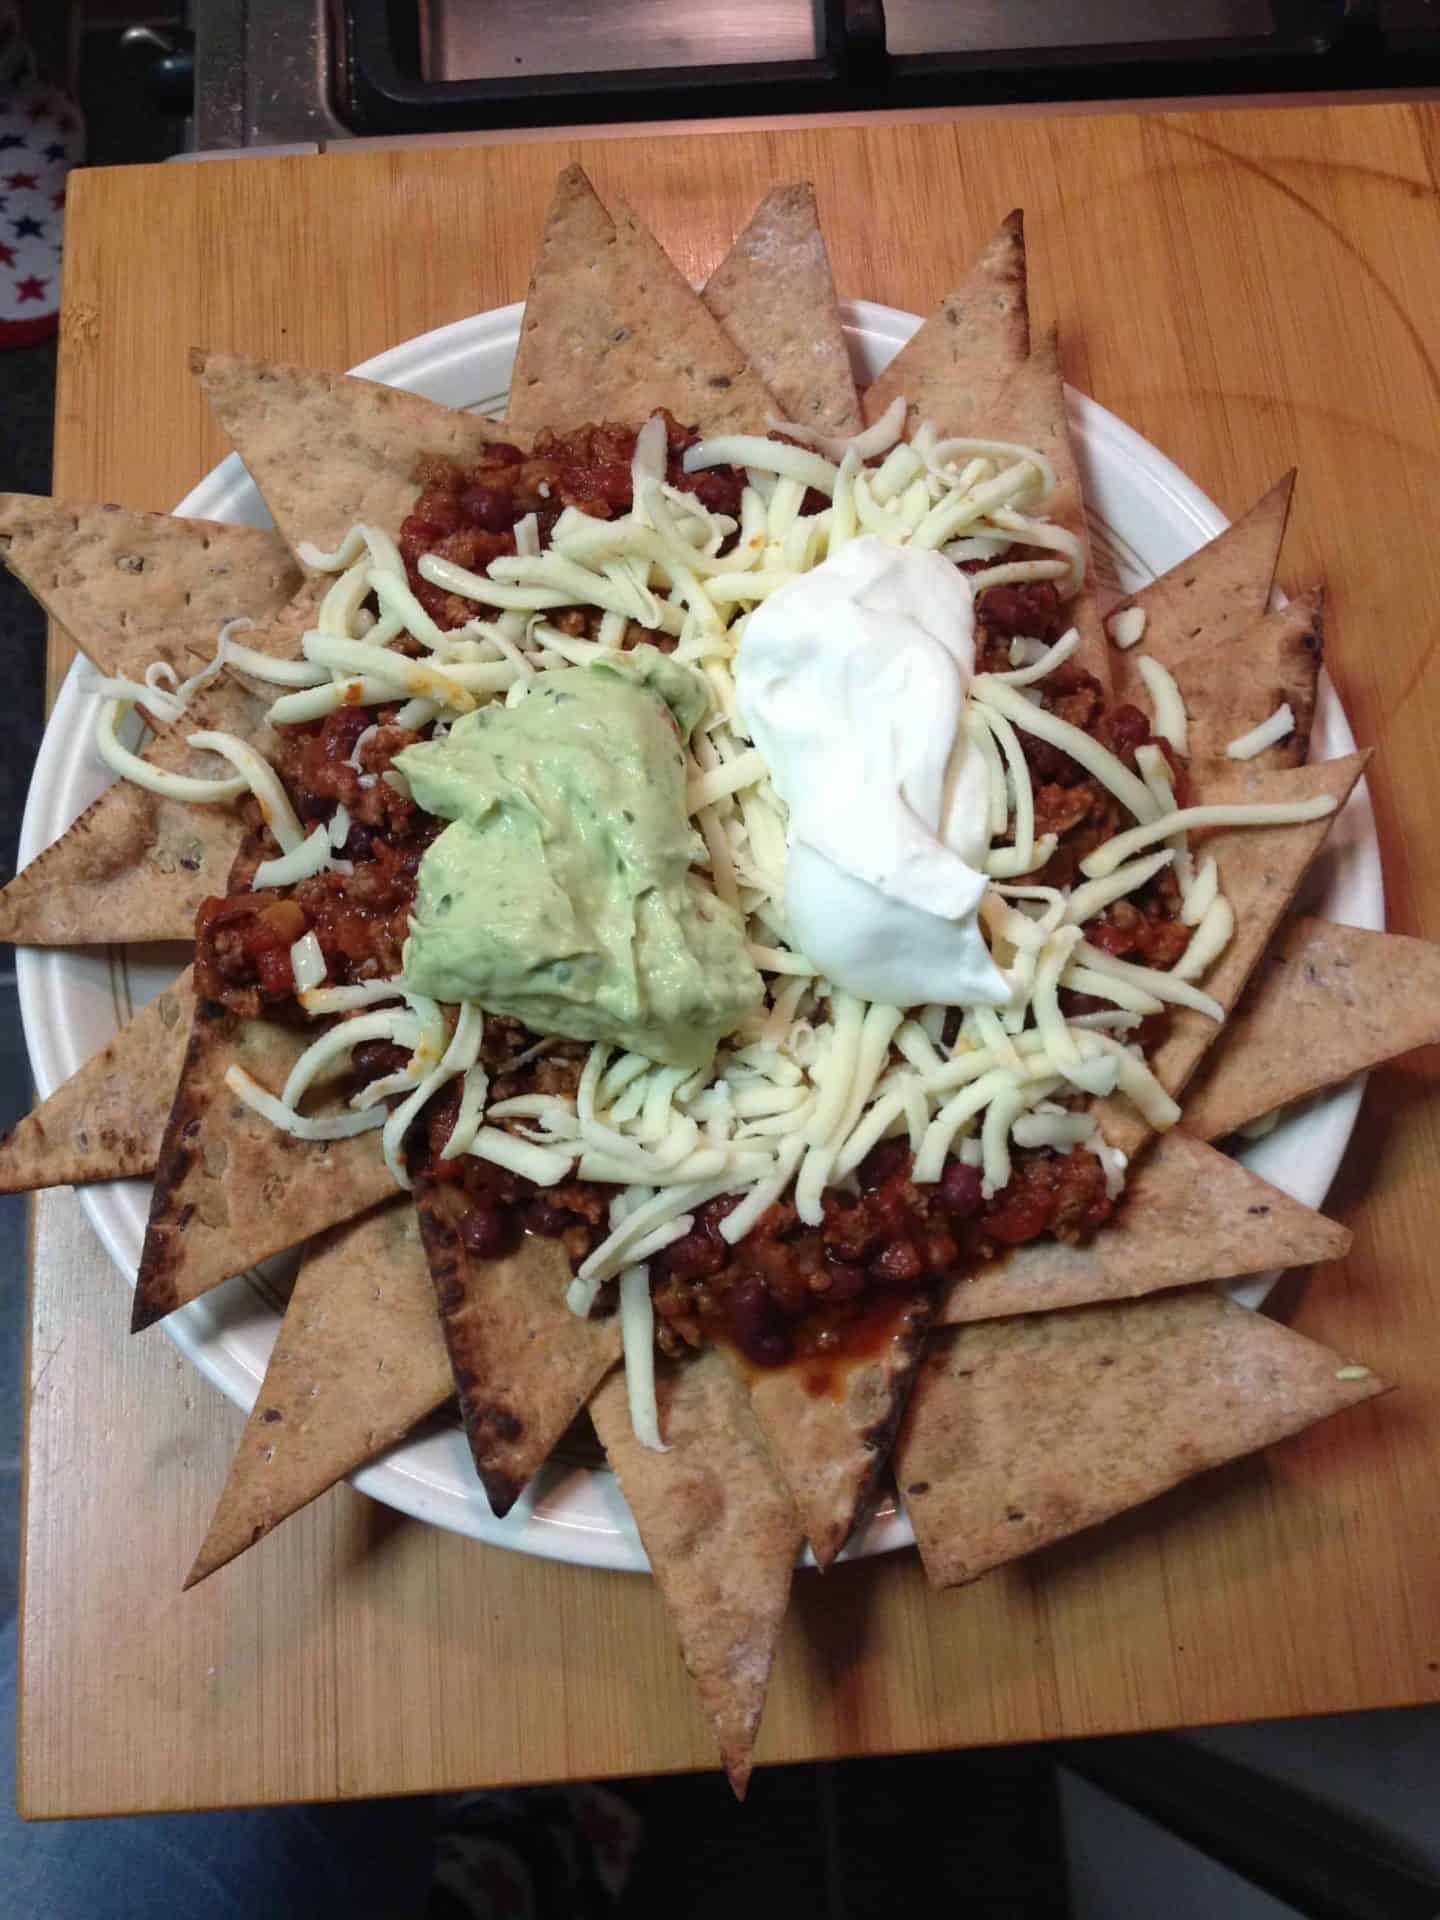 Home made gluten free nachos for belated 'Superbowl Sunday'